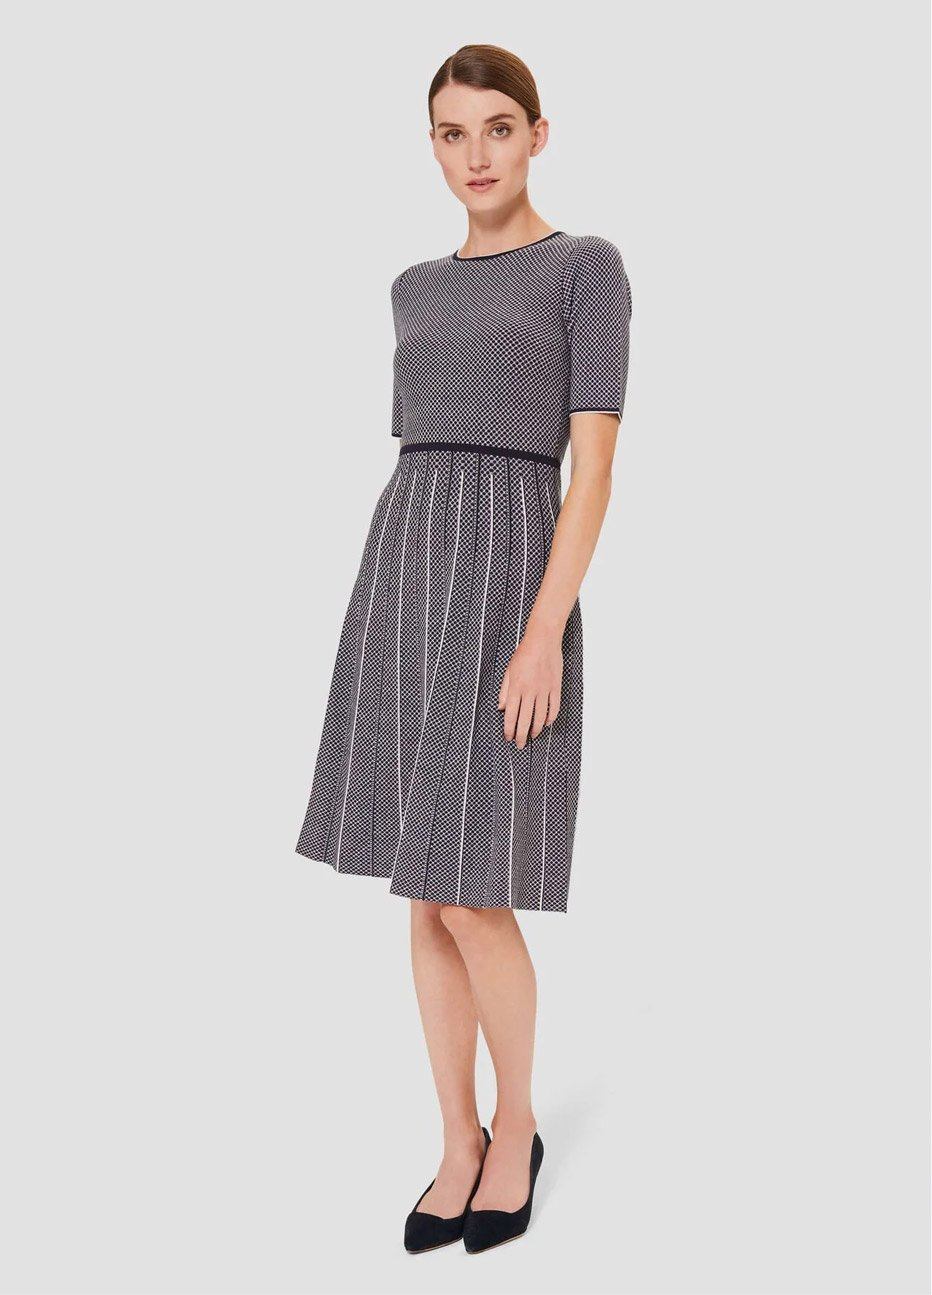 Short-sleeved fit and flare knitted dress in navy with ivory vertical stripes, paired with low heeled black court shoes, by Hobbs.